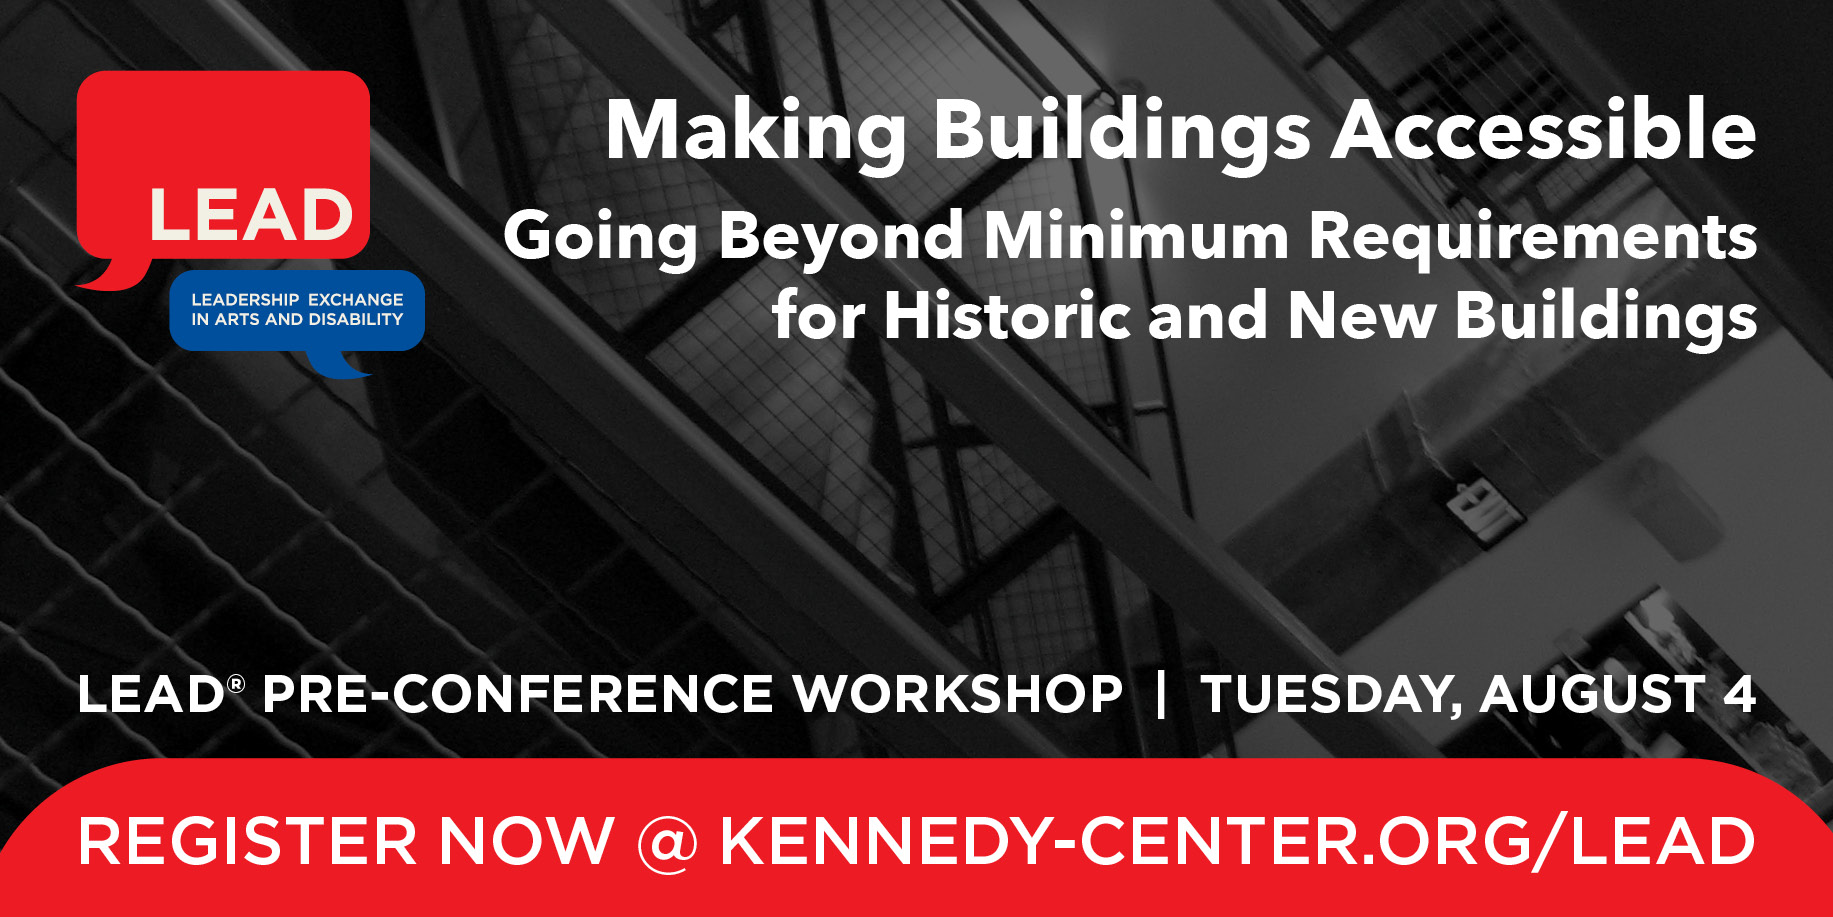 Pre-Conference Graphic: Making Building Accessible